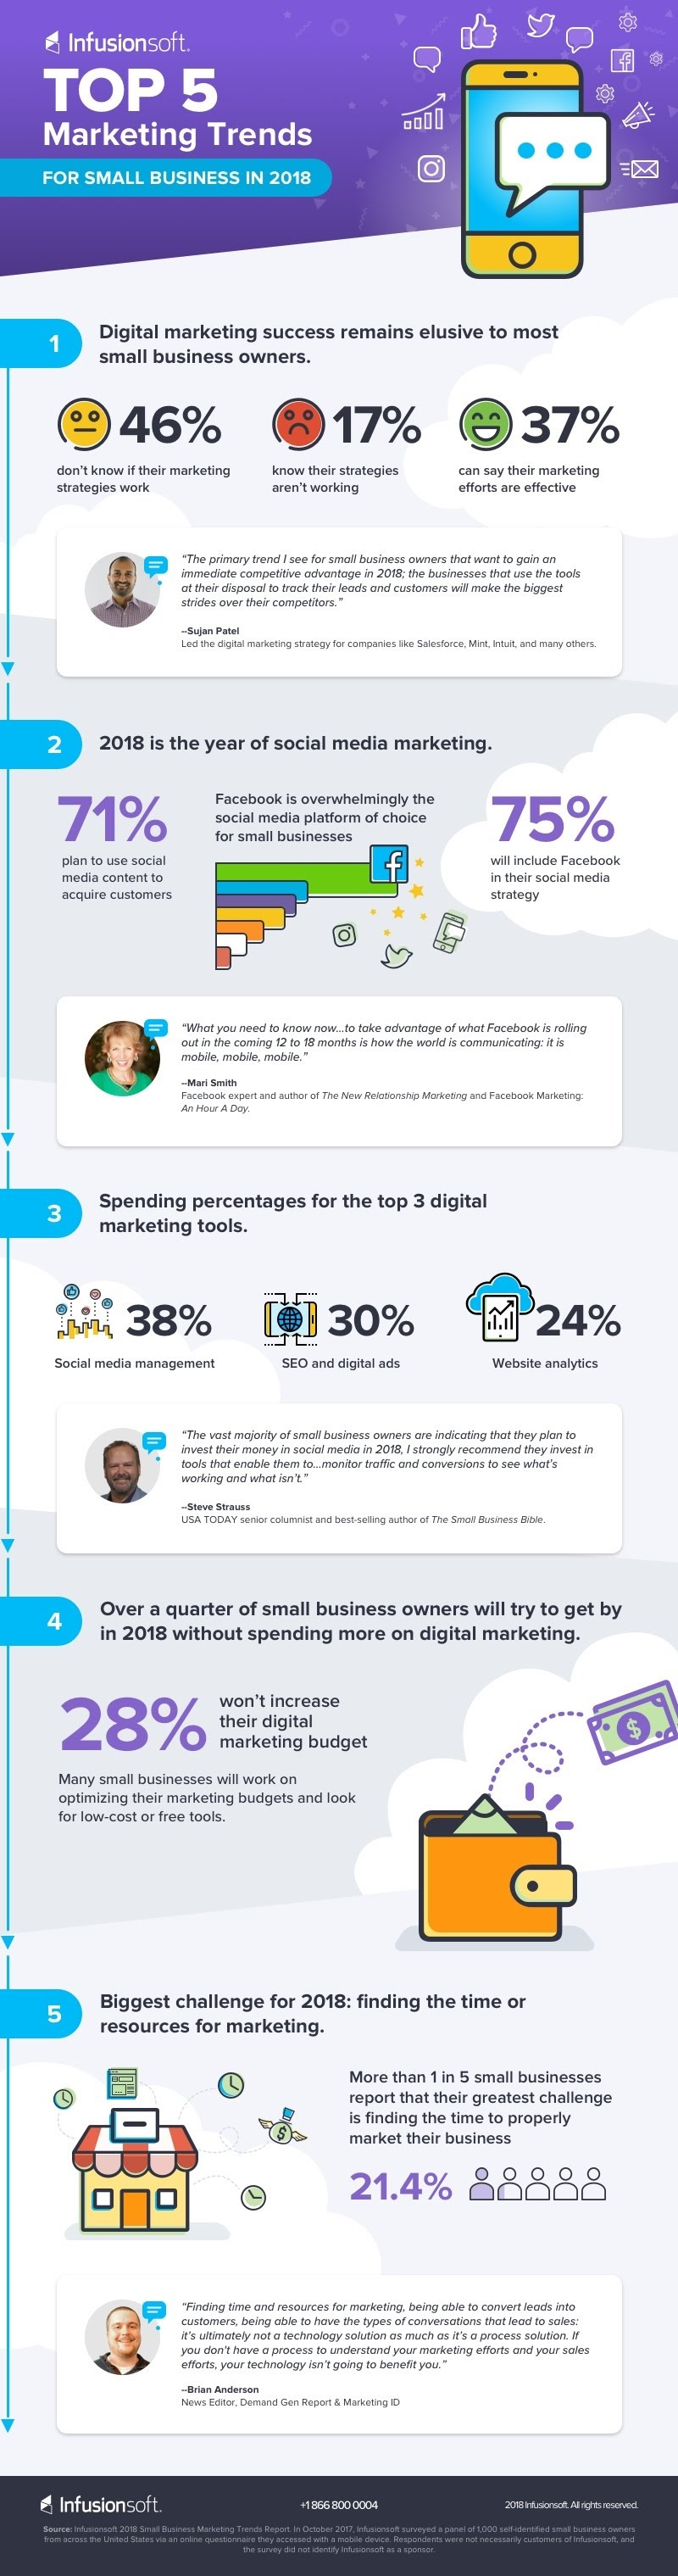 Top 5 Marketing Trends for Small Business in 2018 #infographic